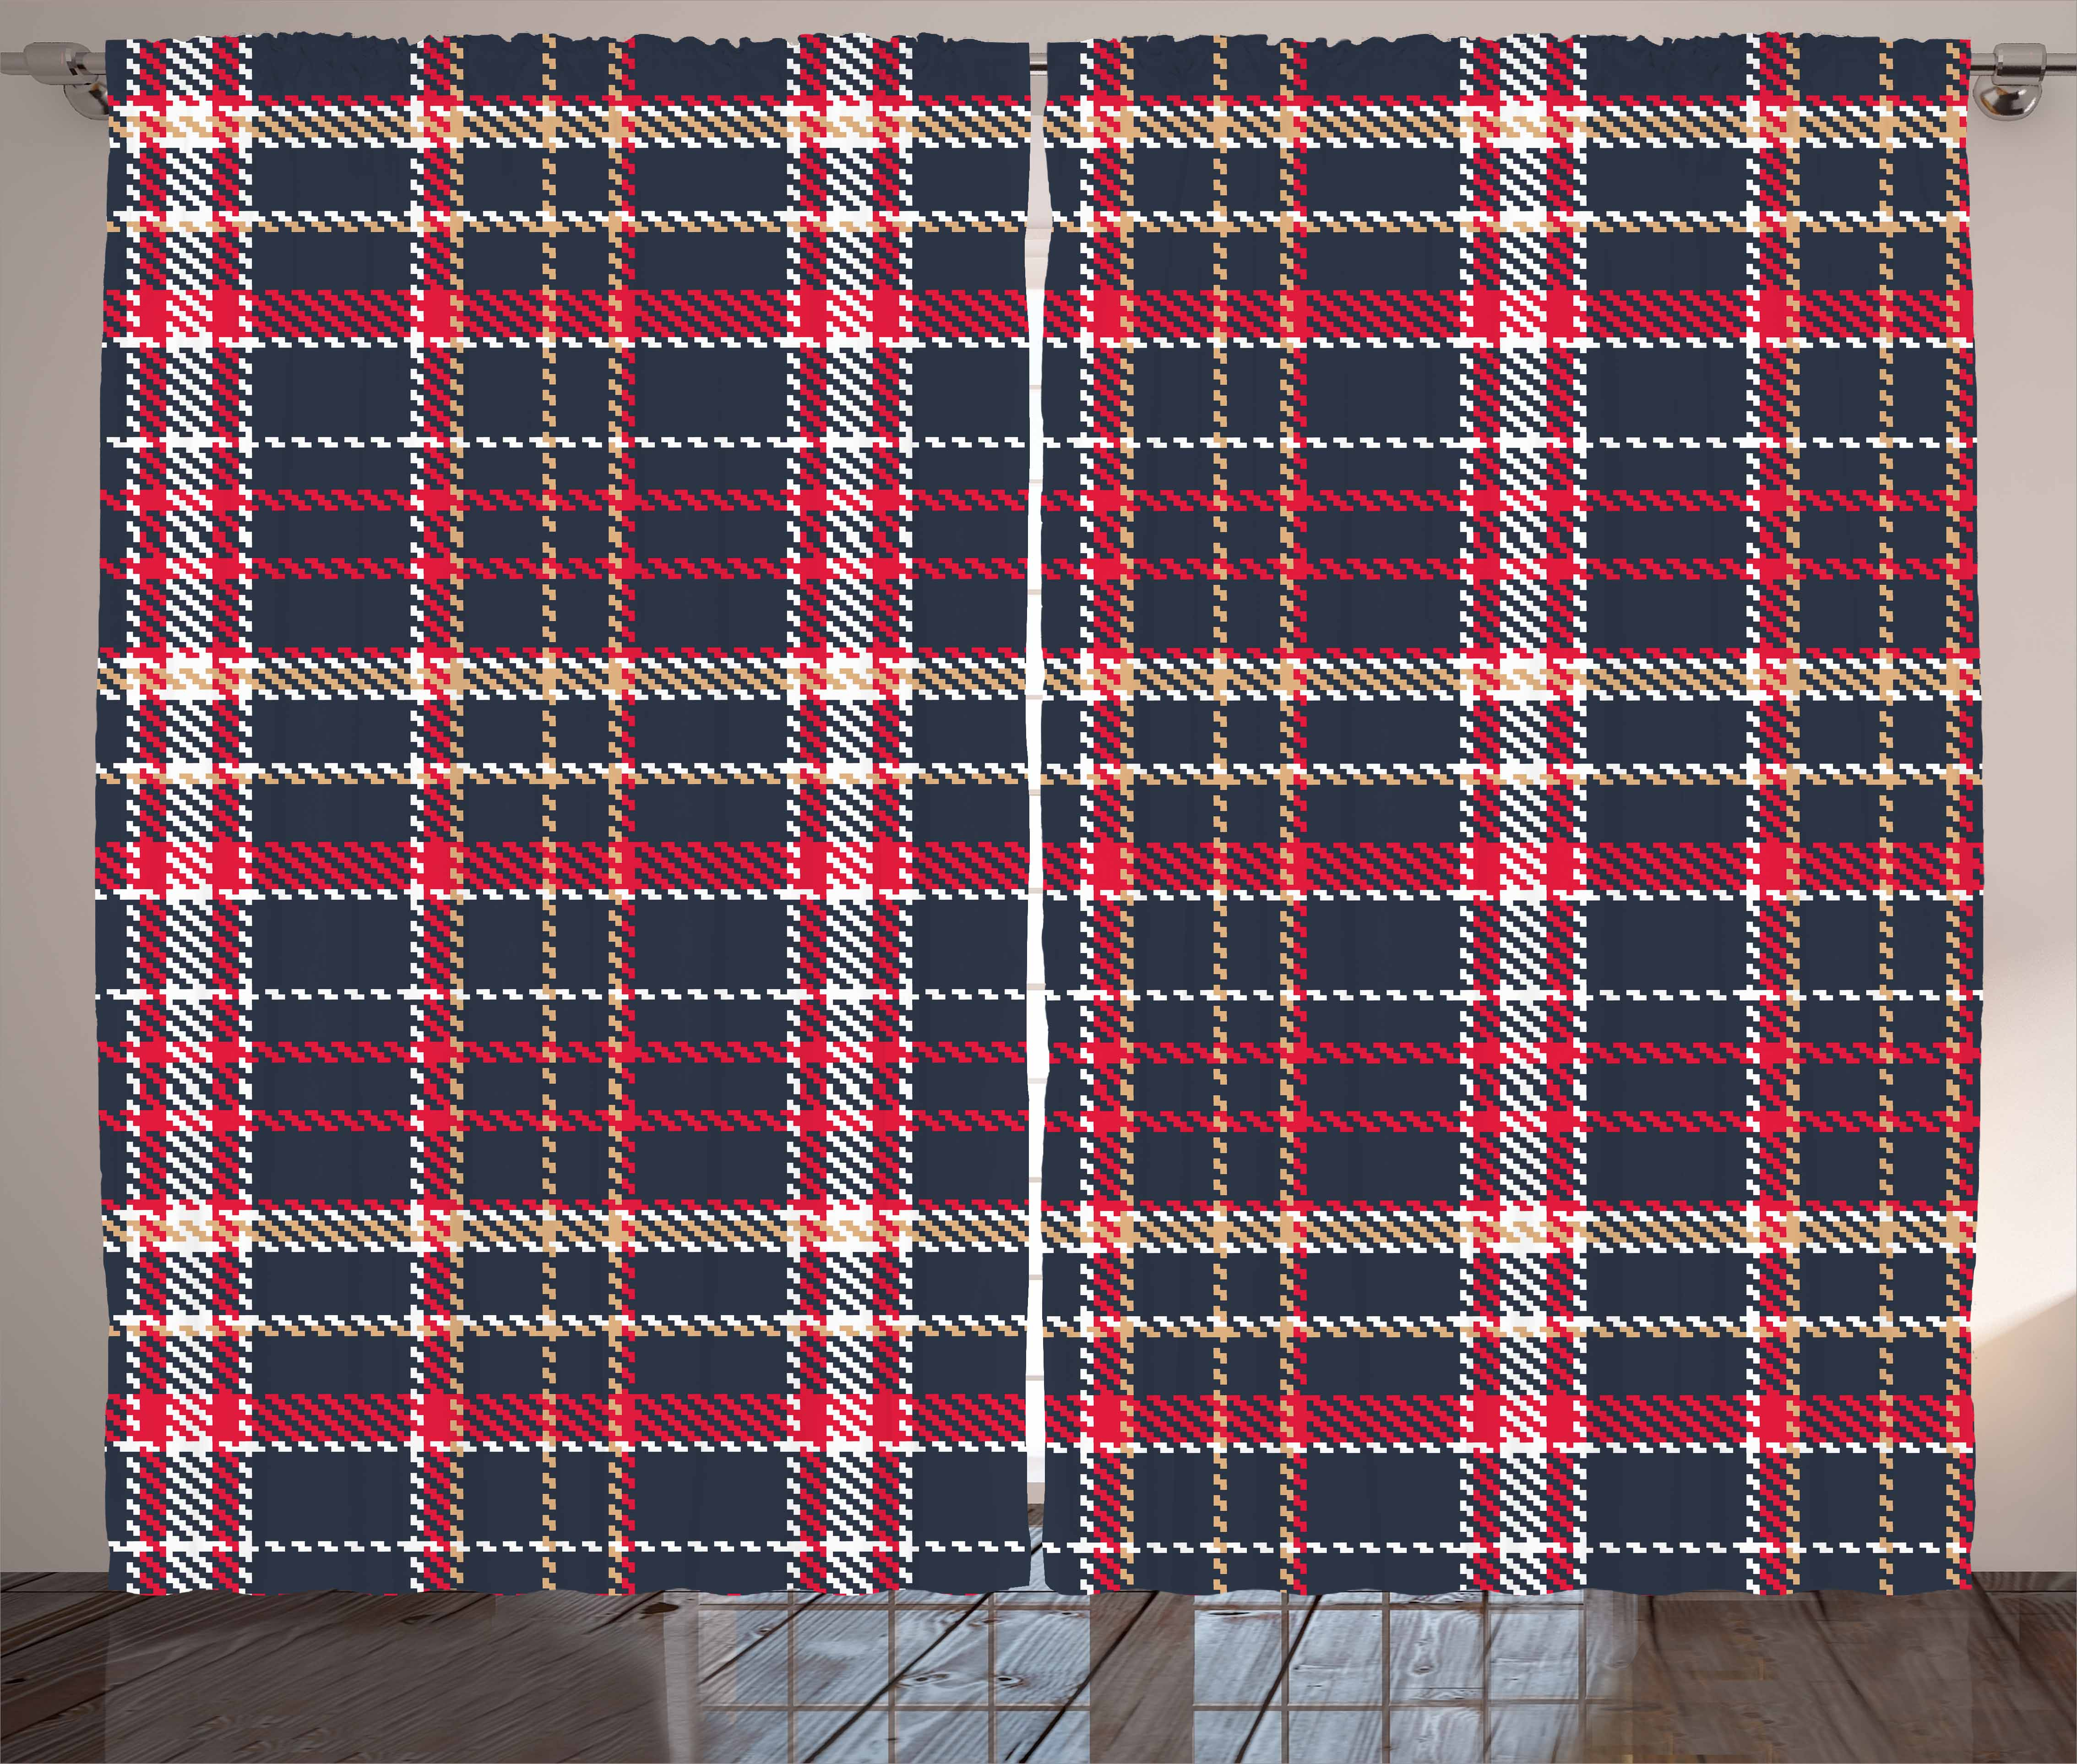 Red Plaid Curtains 2 Panels Set, Classic Quilt Checkerboard Pattern With  Pixel Art Inspirations Traditional